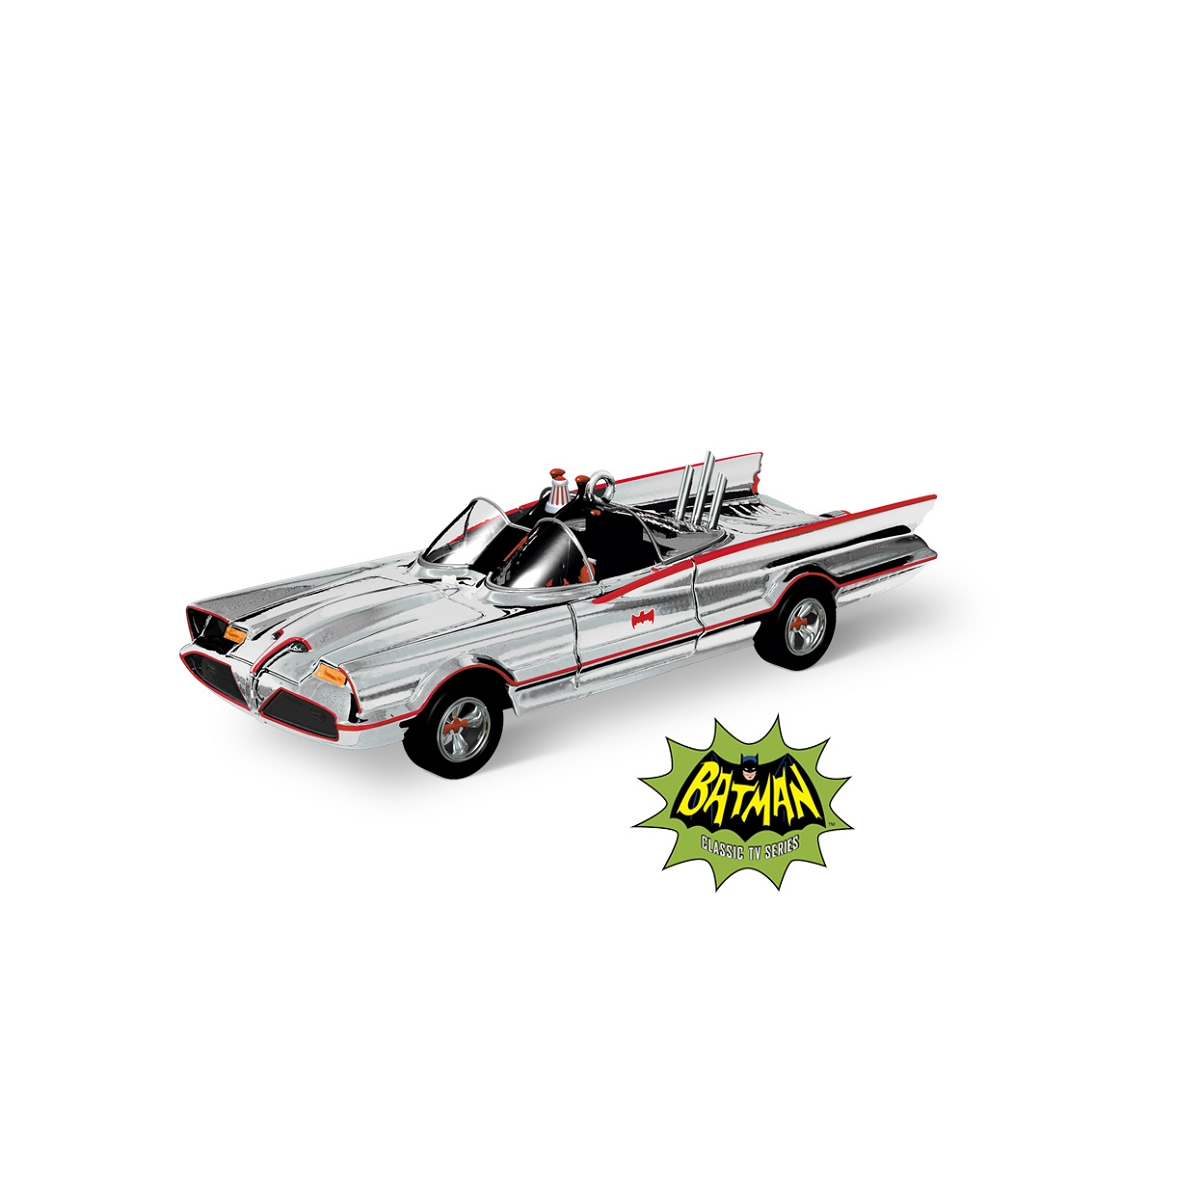 2015 Comic Con Batman Classic Batmobile - SDB- only 1575 produced!